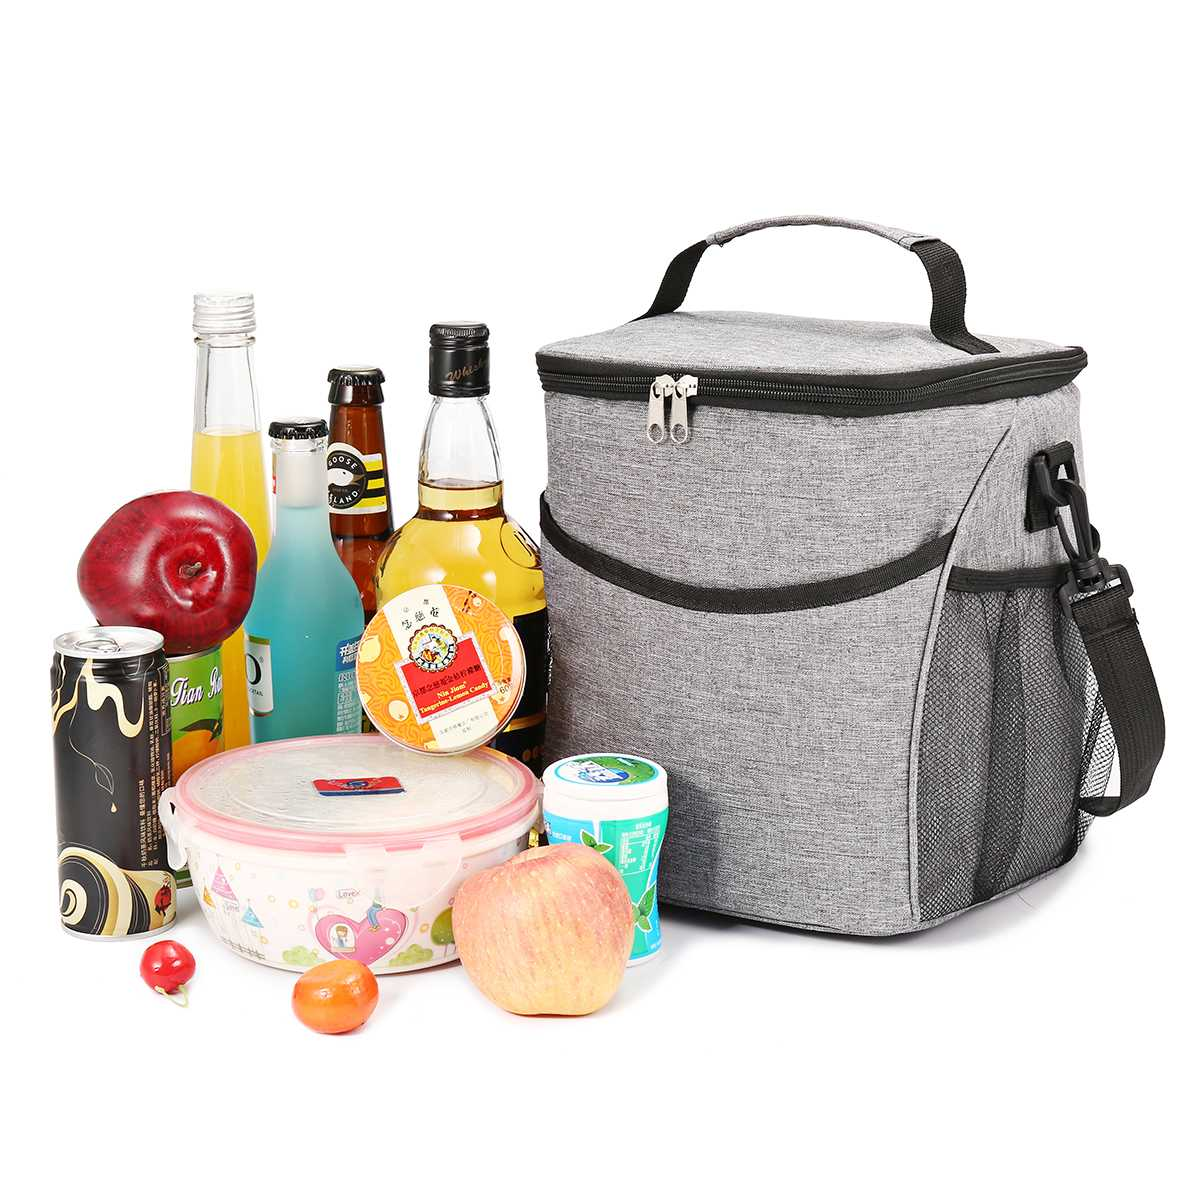 Portable Lunch Bag 9L Thermal Insulated Lunch Box Cooler Handbag Bento Pouch Dinner Container Picnic School Food Storage Bags